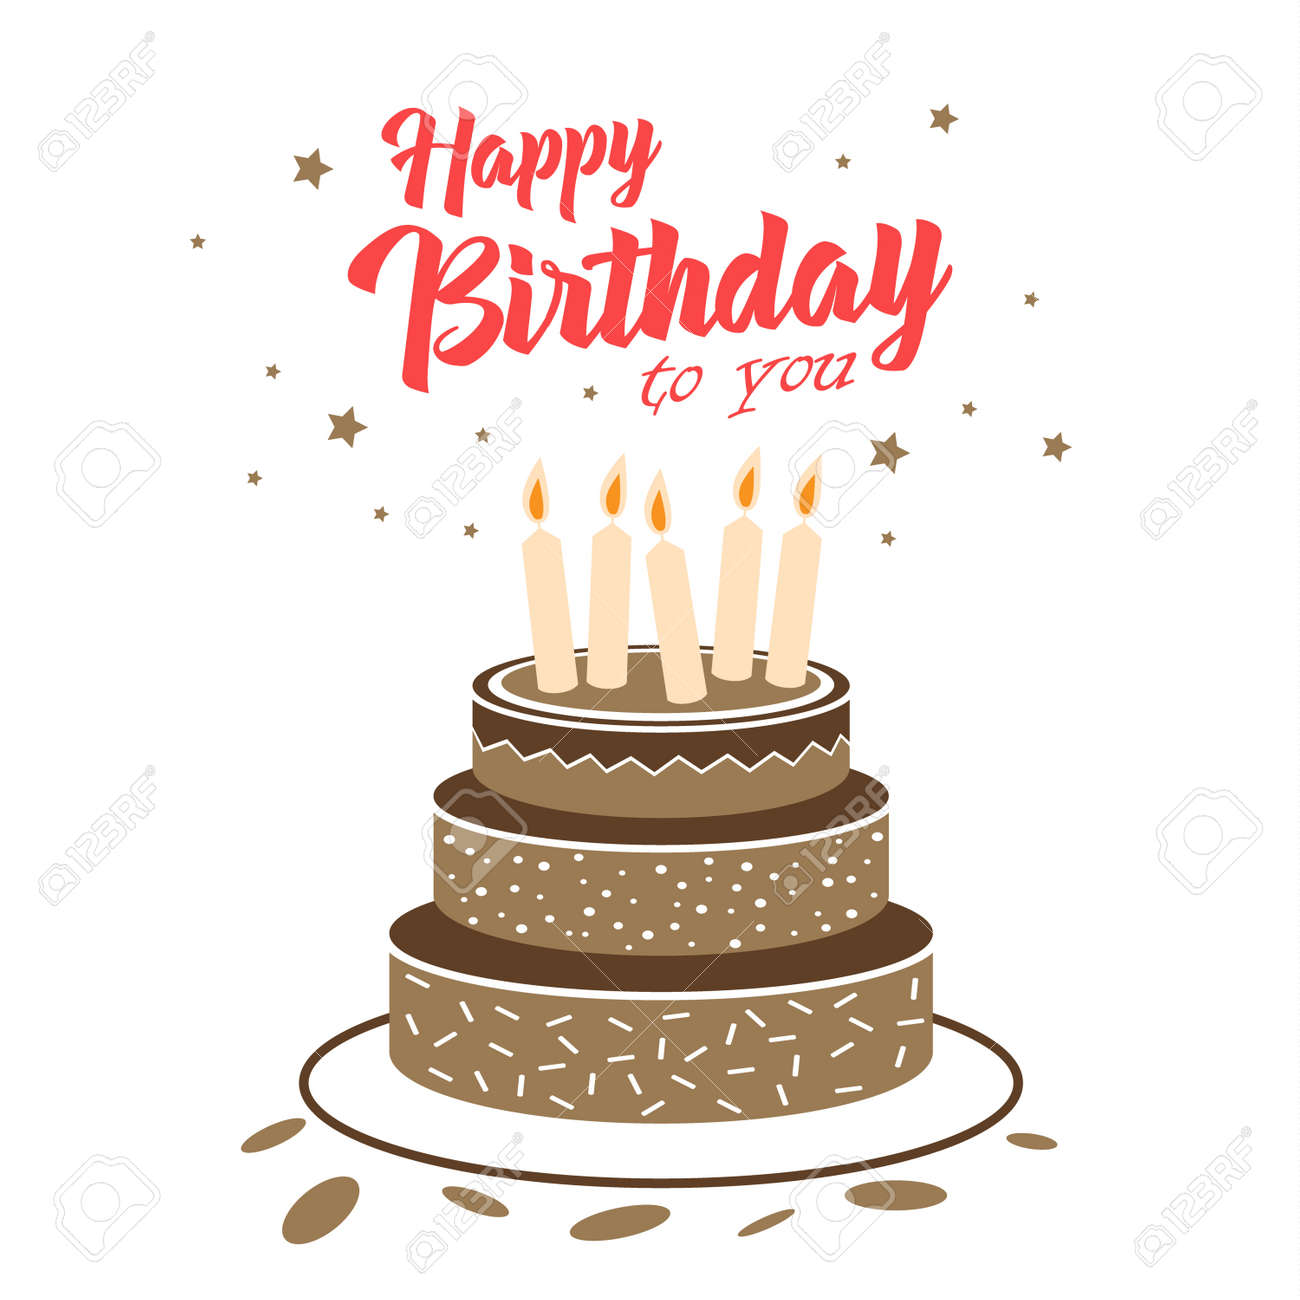 Birthday card with chocolate cake and stars template vector eps 10 - 158704332